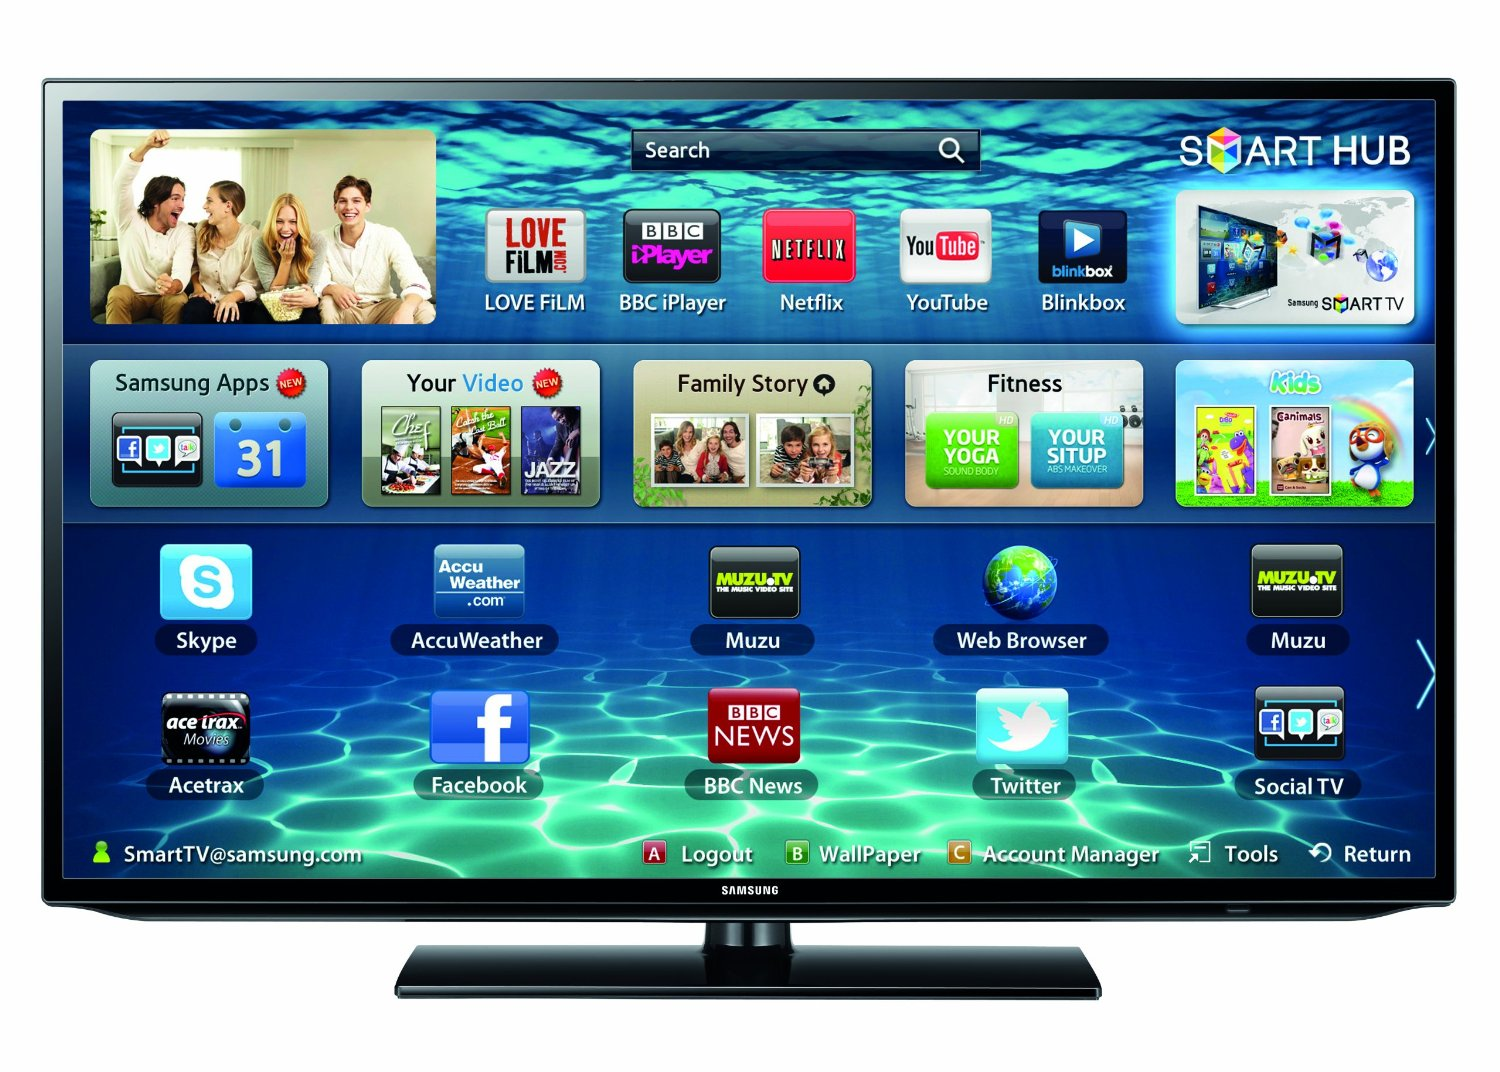 samsung 40 inch smart tv. samsung ue40f5300 series 5 40 inch smart tv